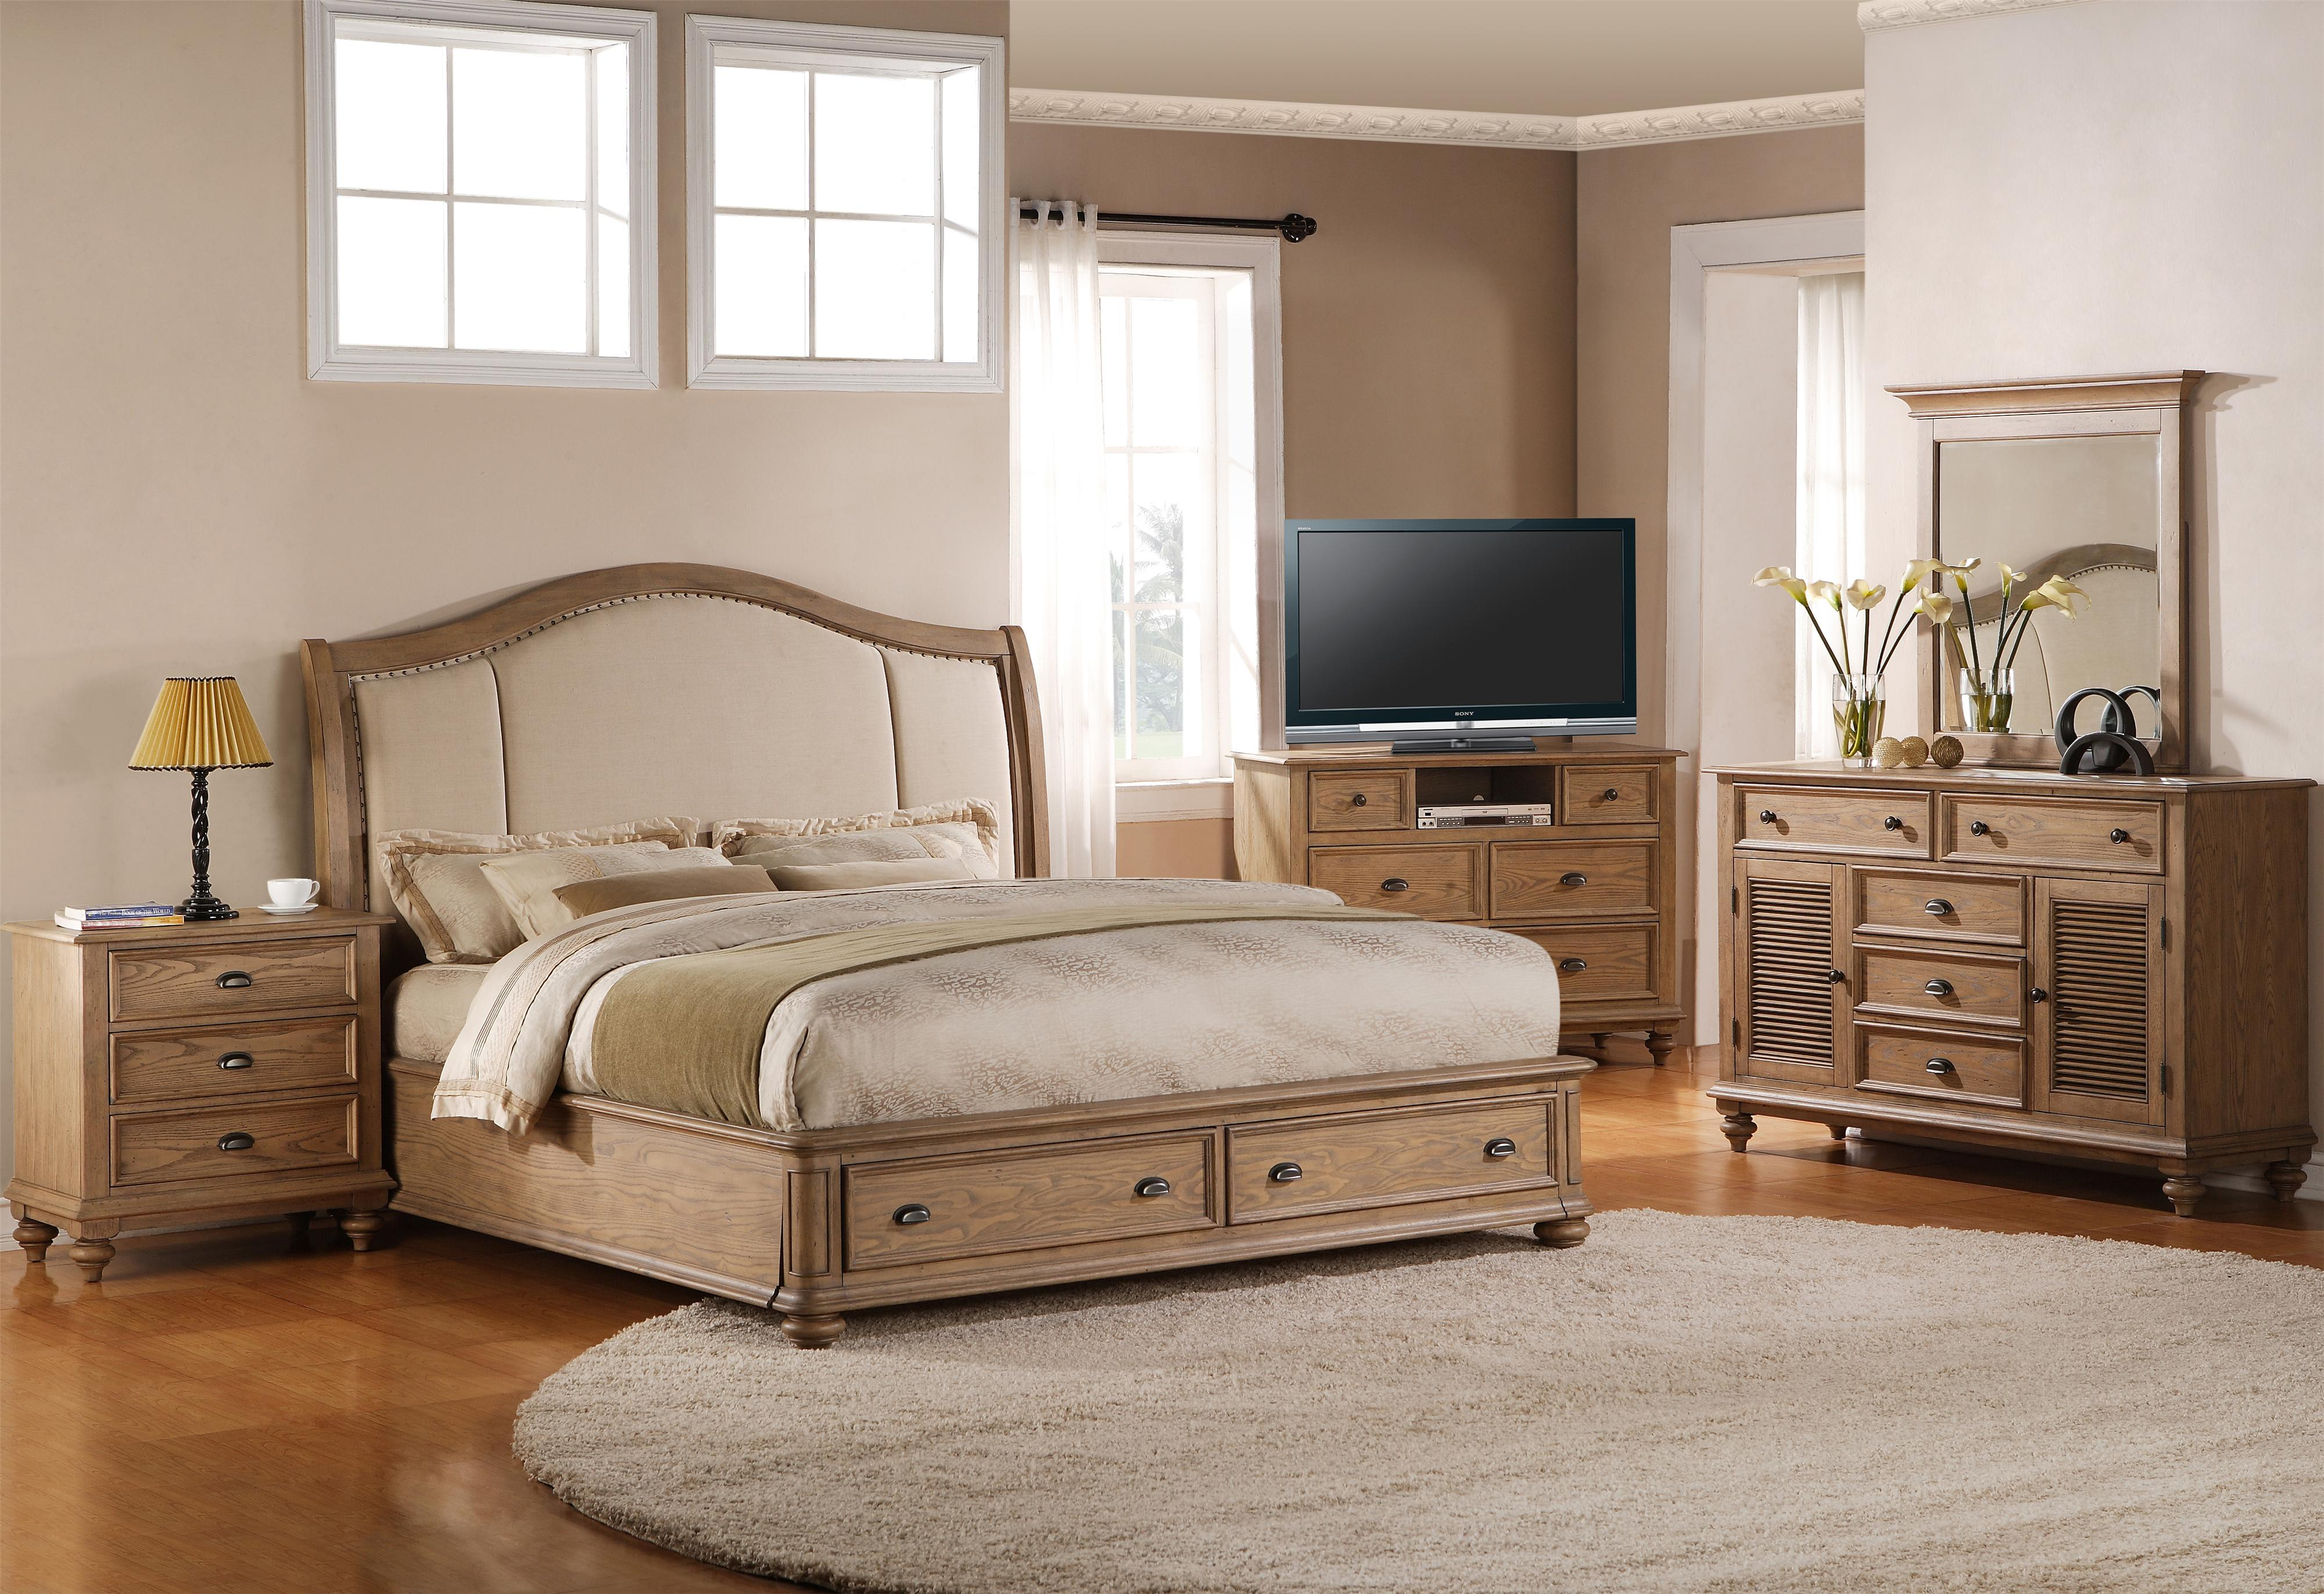 King Size Bed Frame Coventry